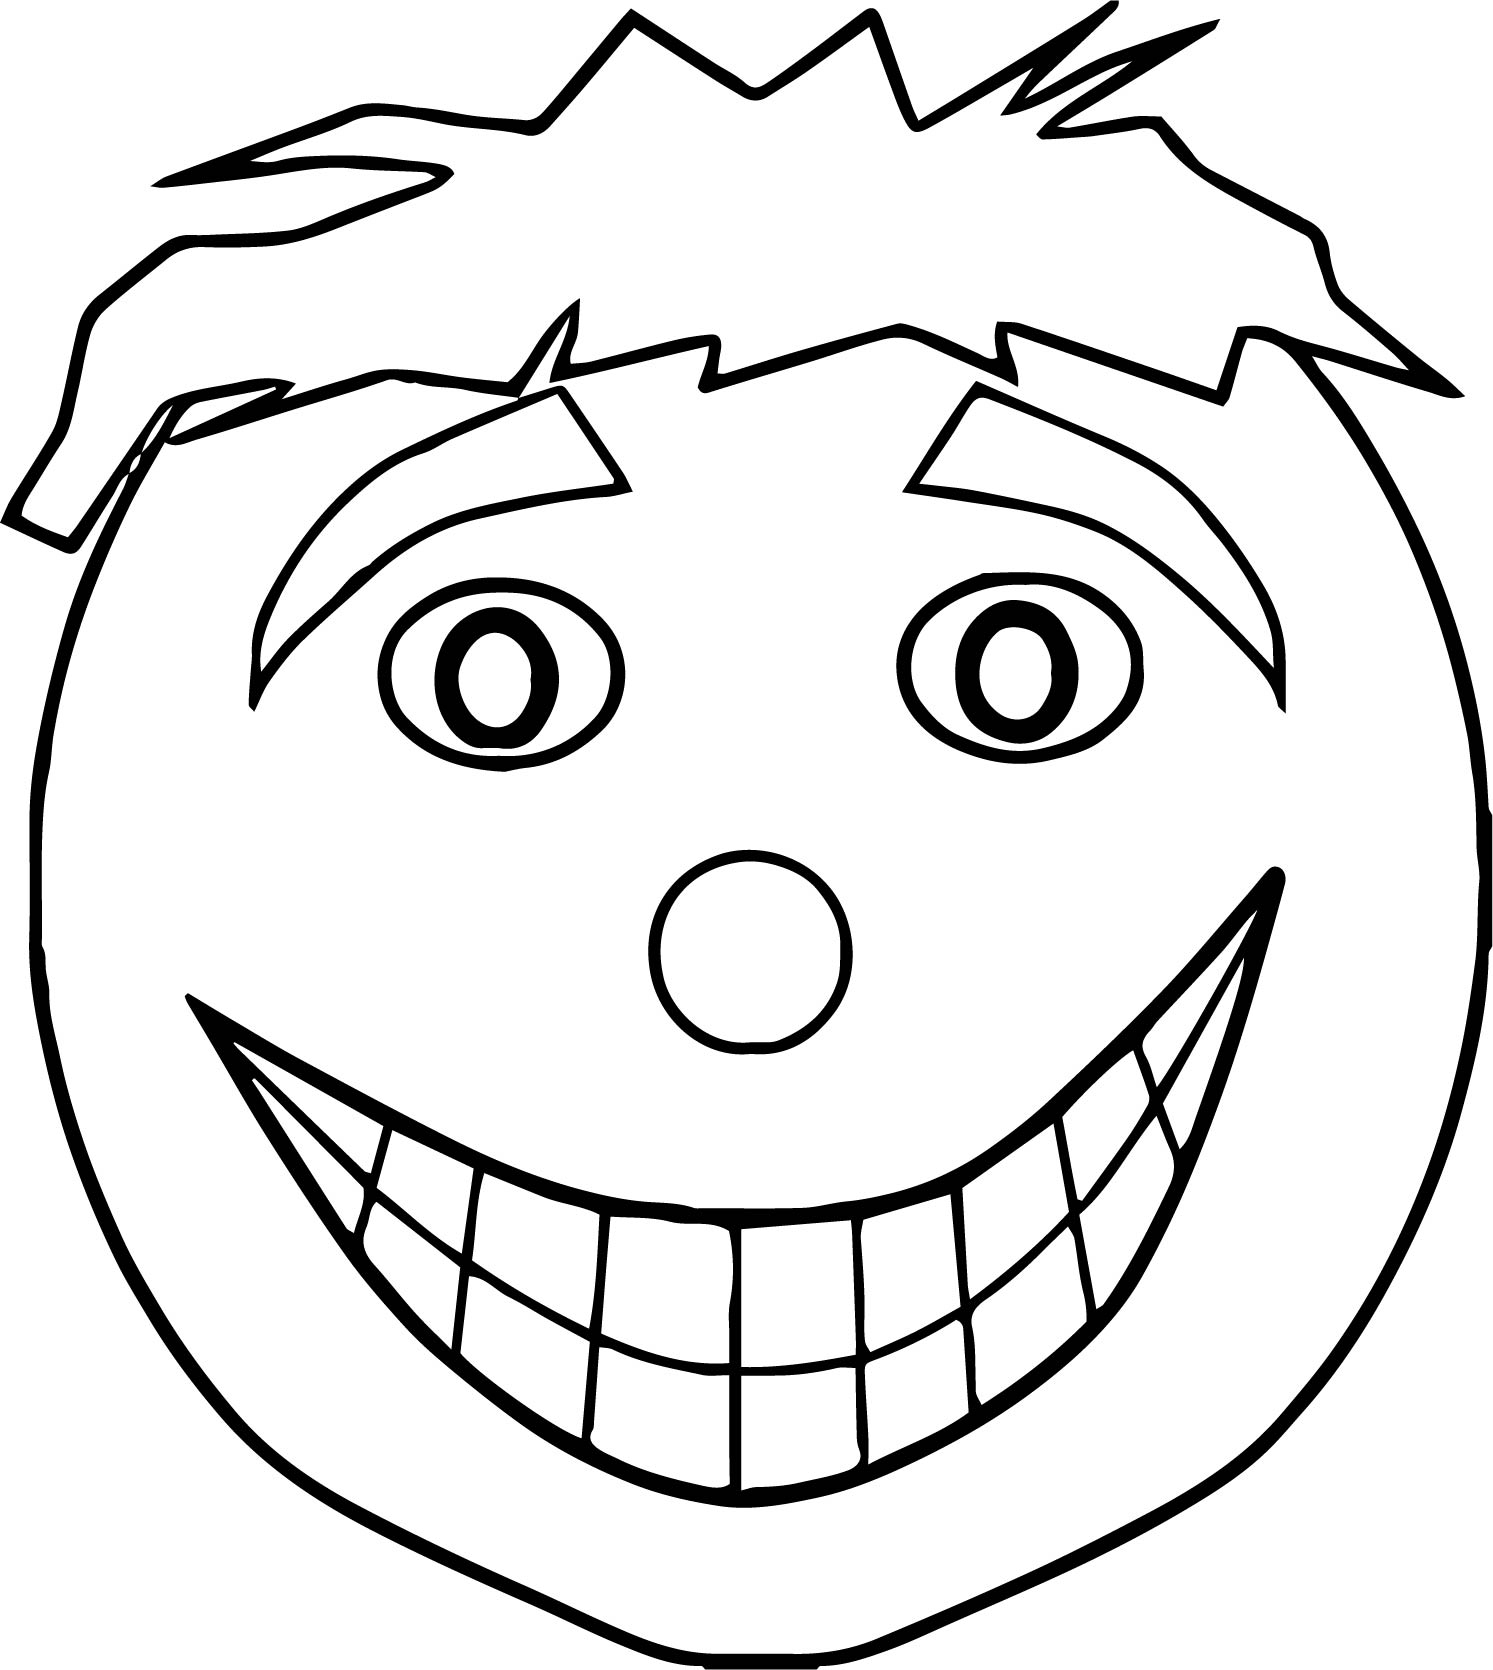 Face Clown Coloring Page